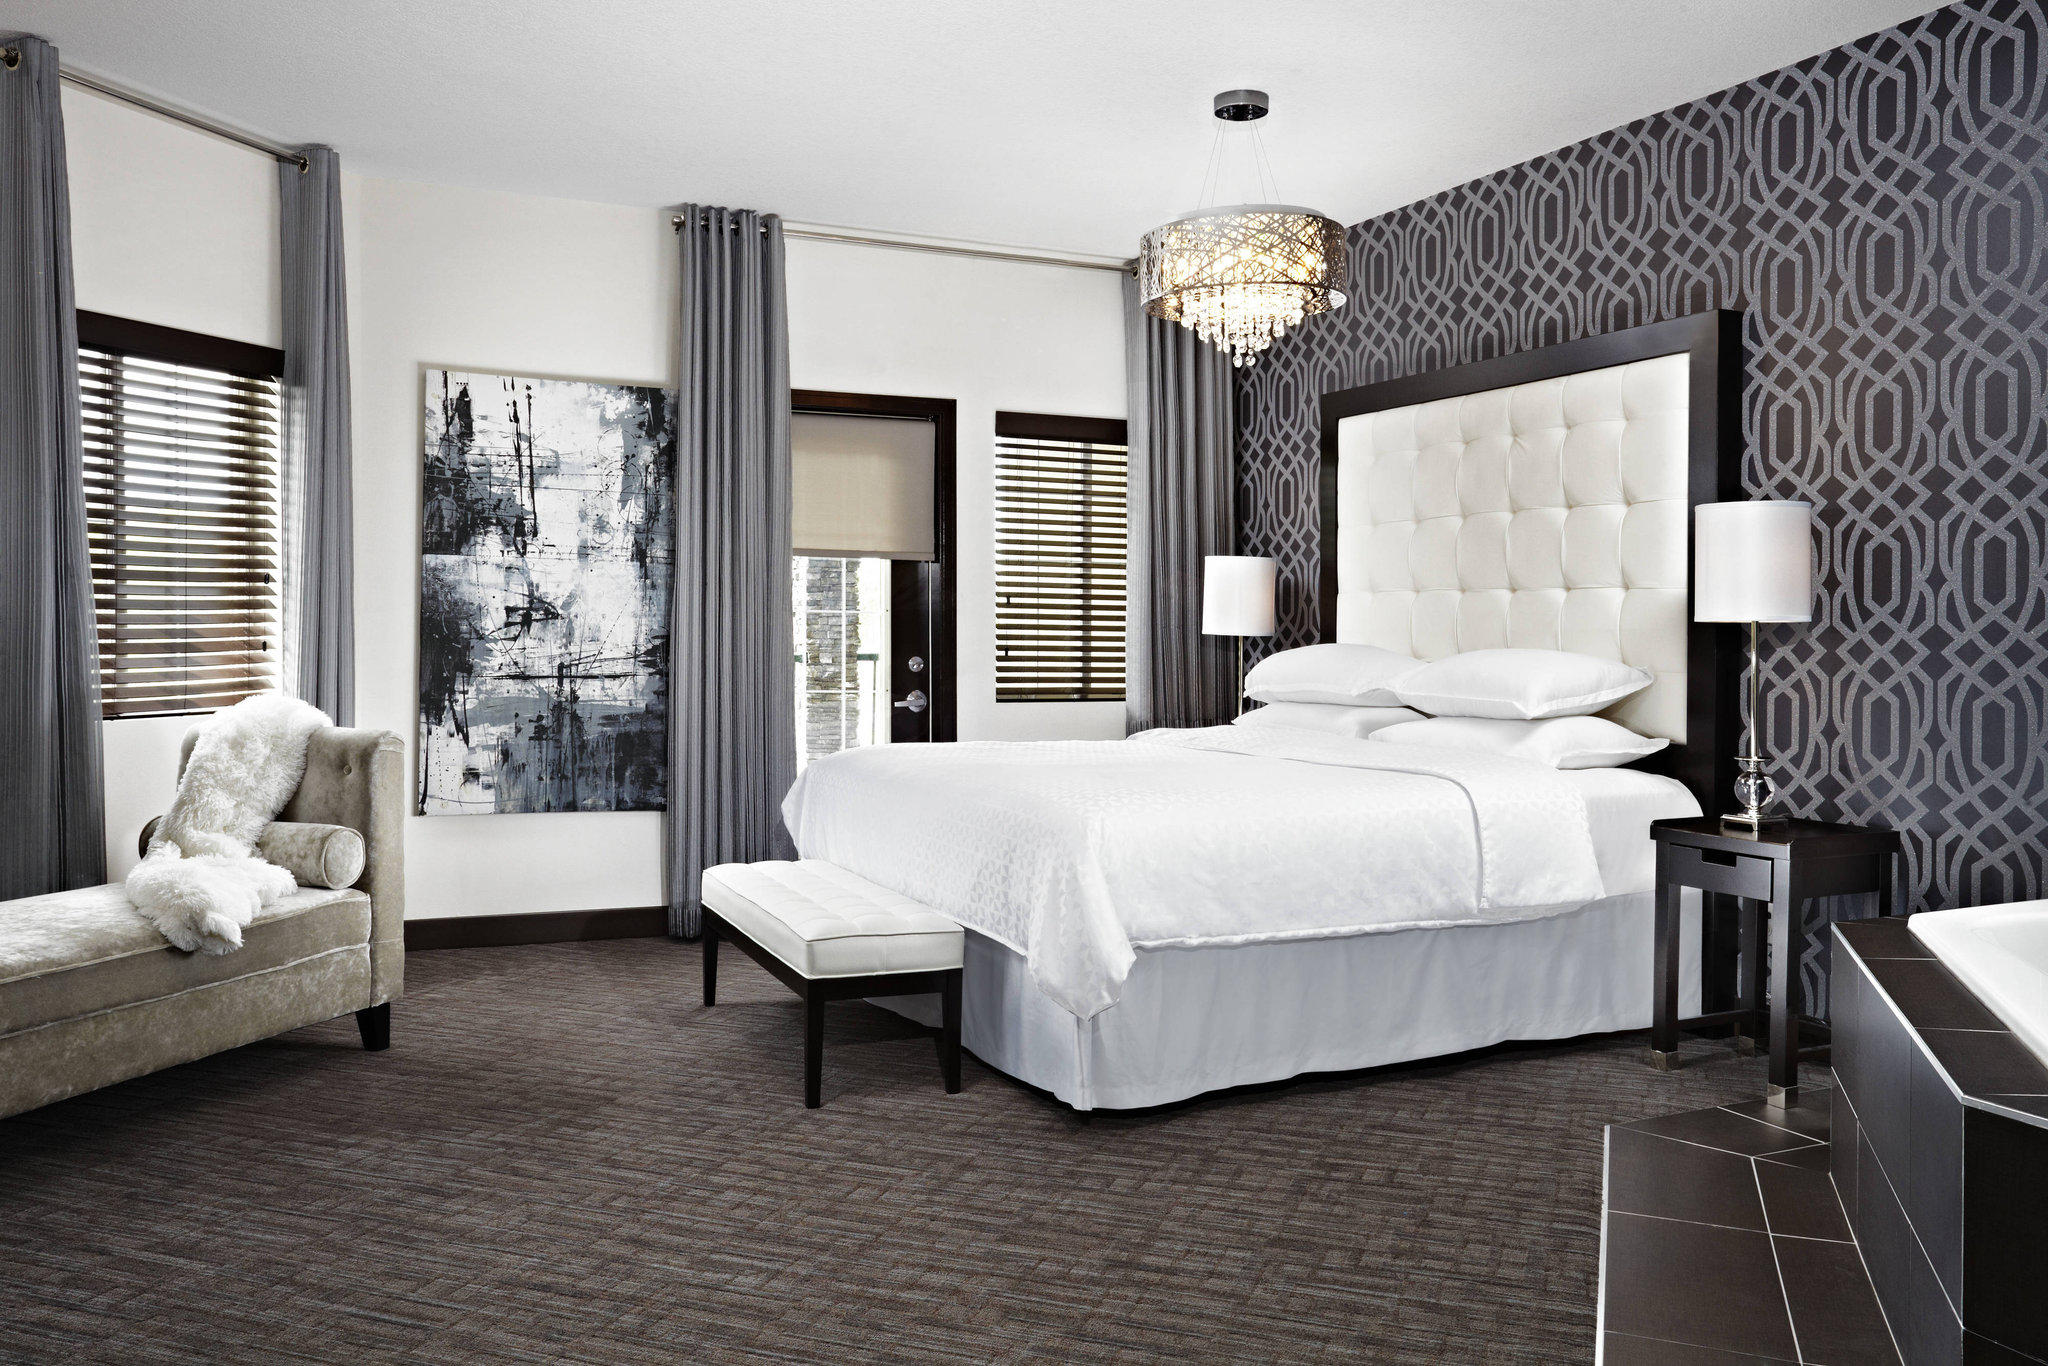 Four Points by Sheraton Hotel & Suites Calgary West